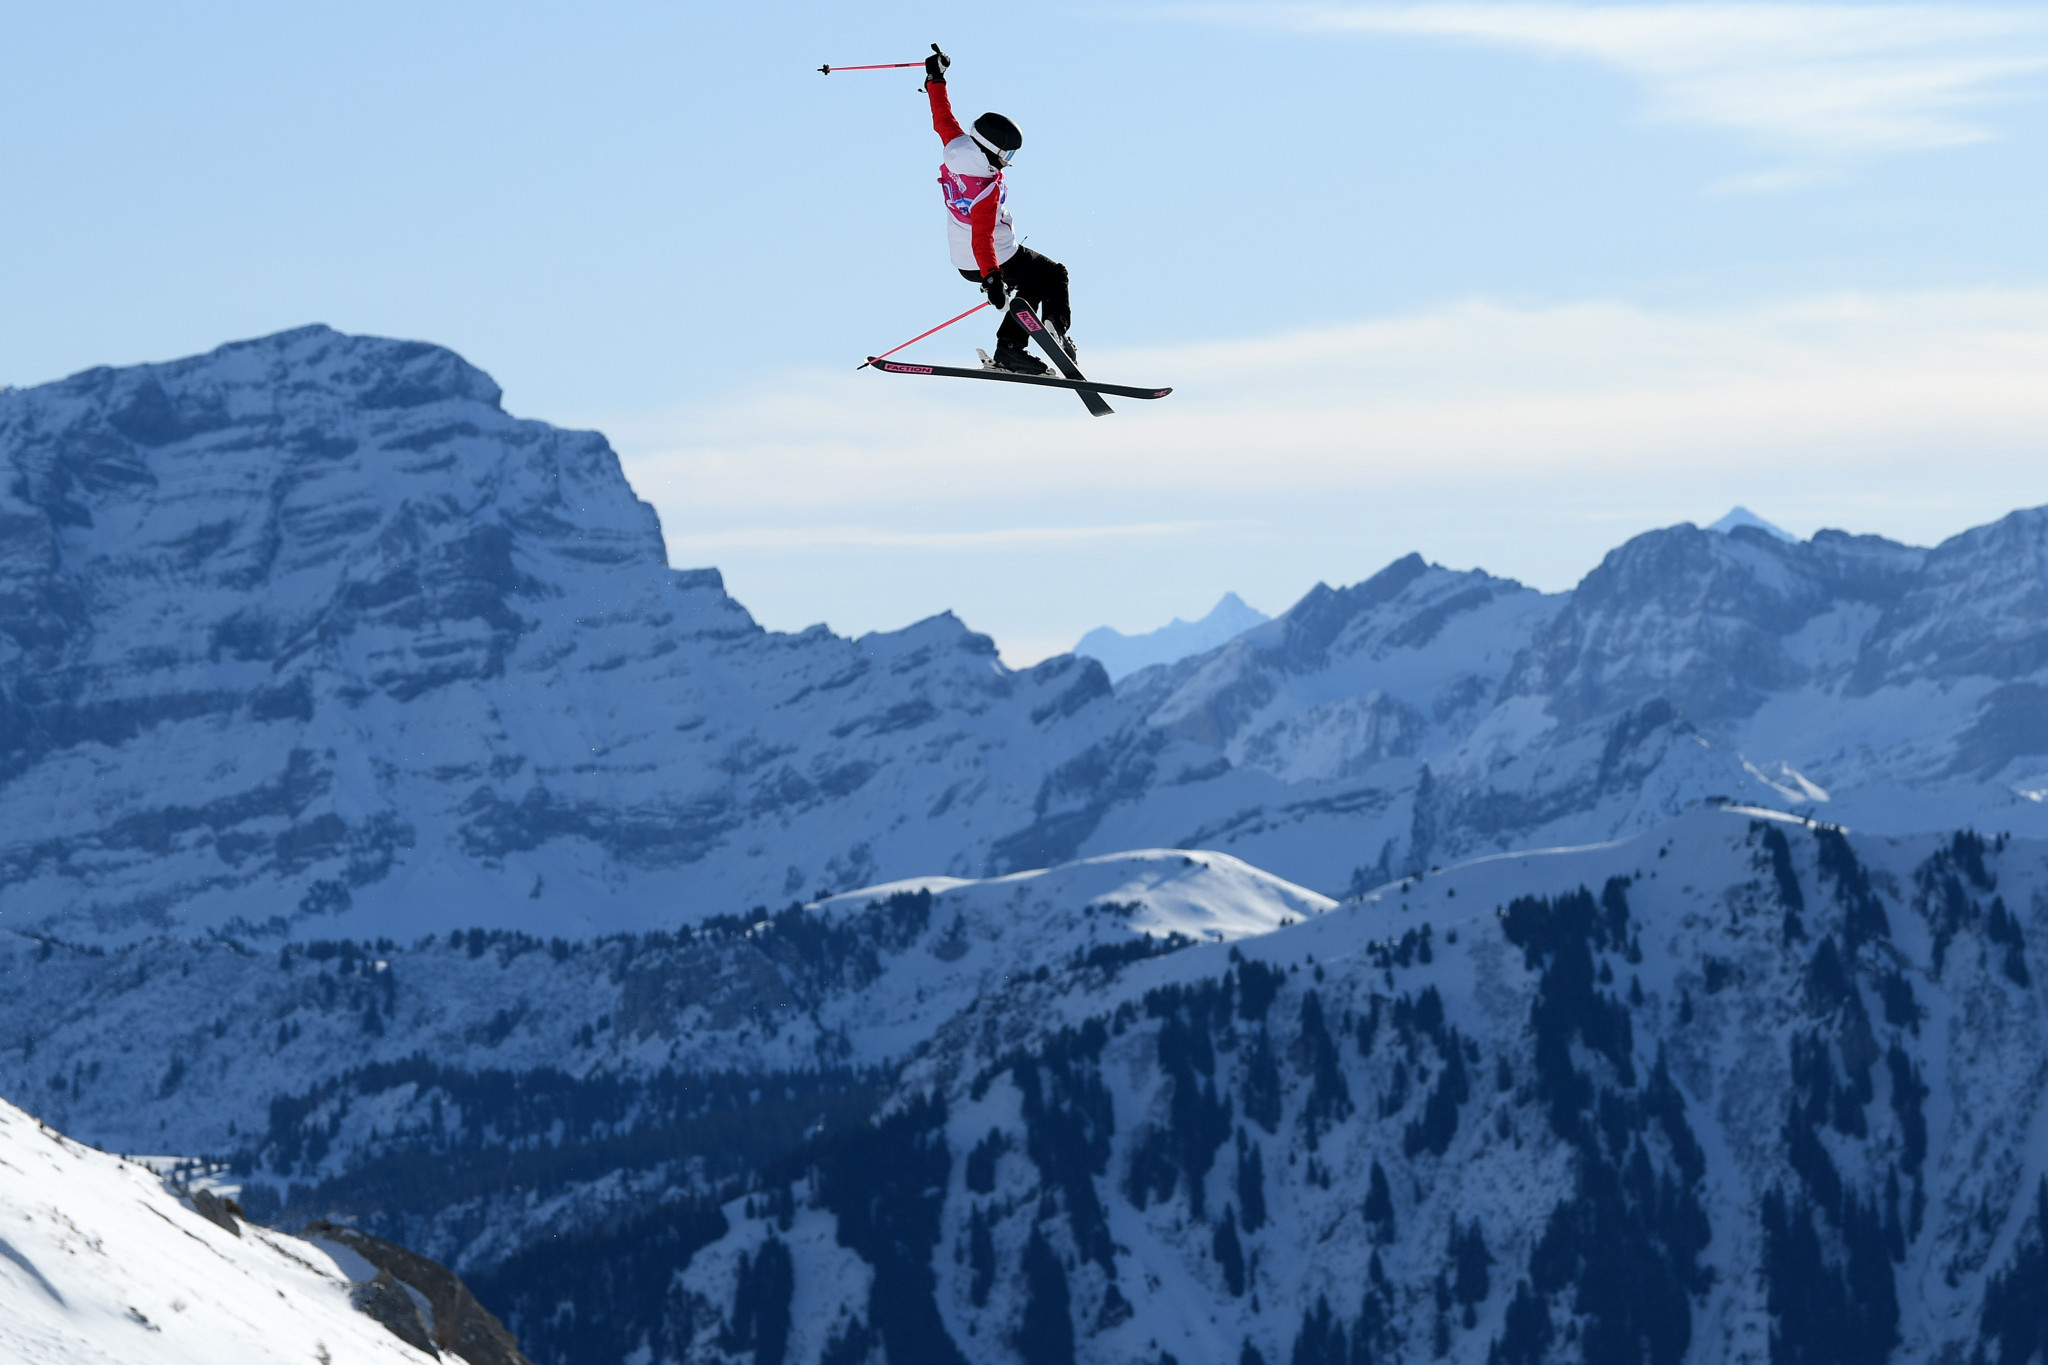 Eileen Gu of China lit up the freestyle big air event on her way to winning a second gold medal ©Getty Images